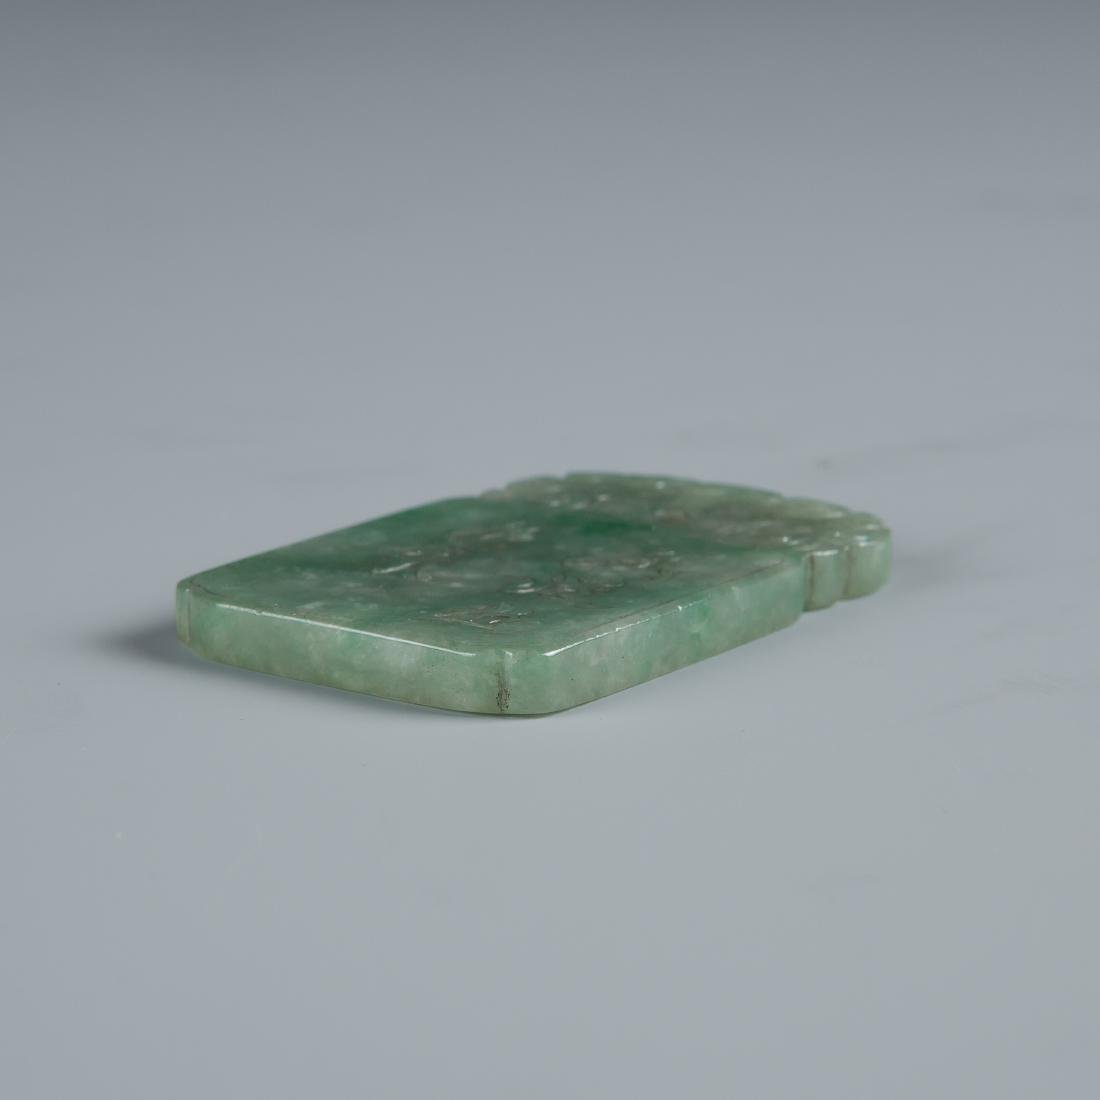 Green Jadeite Pendant With Chinese Characters - 8